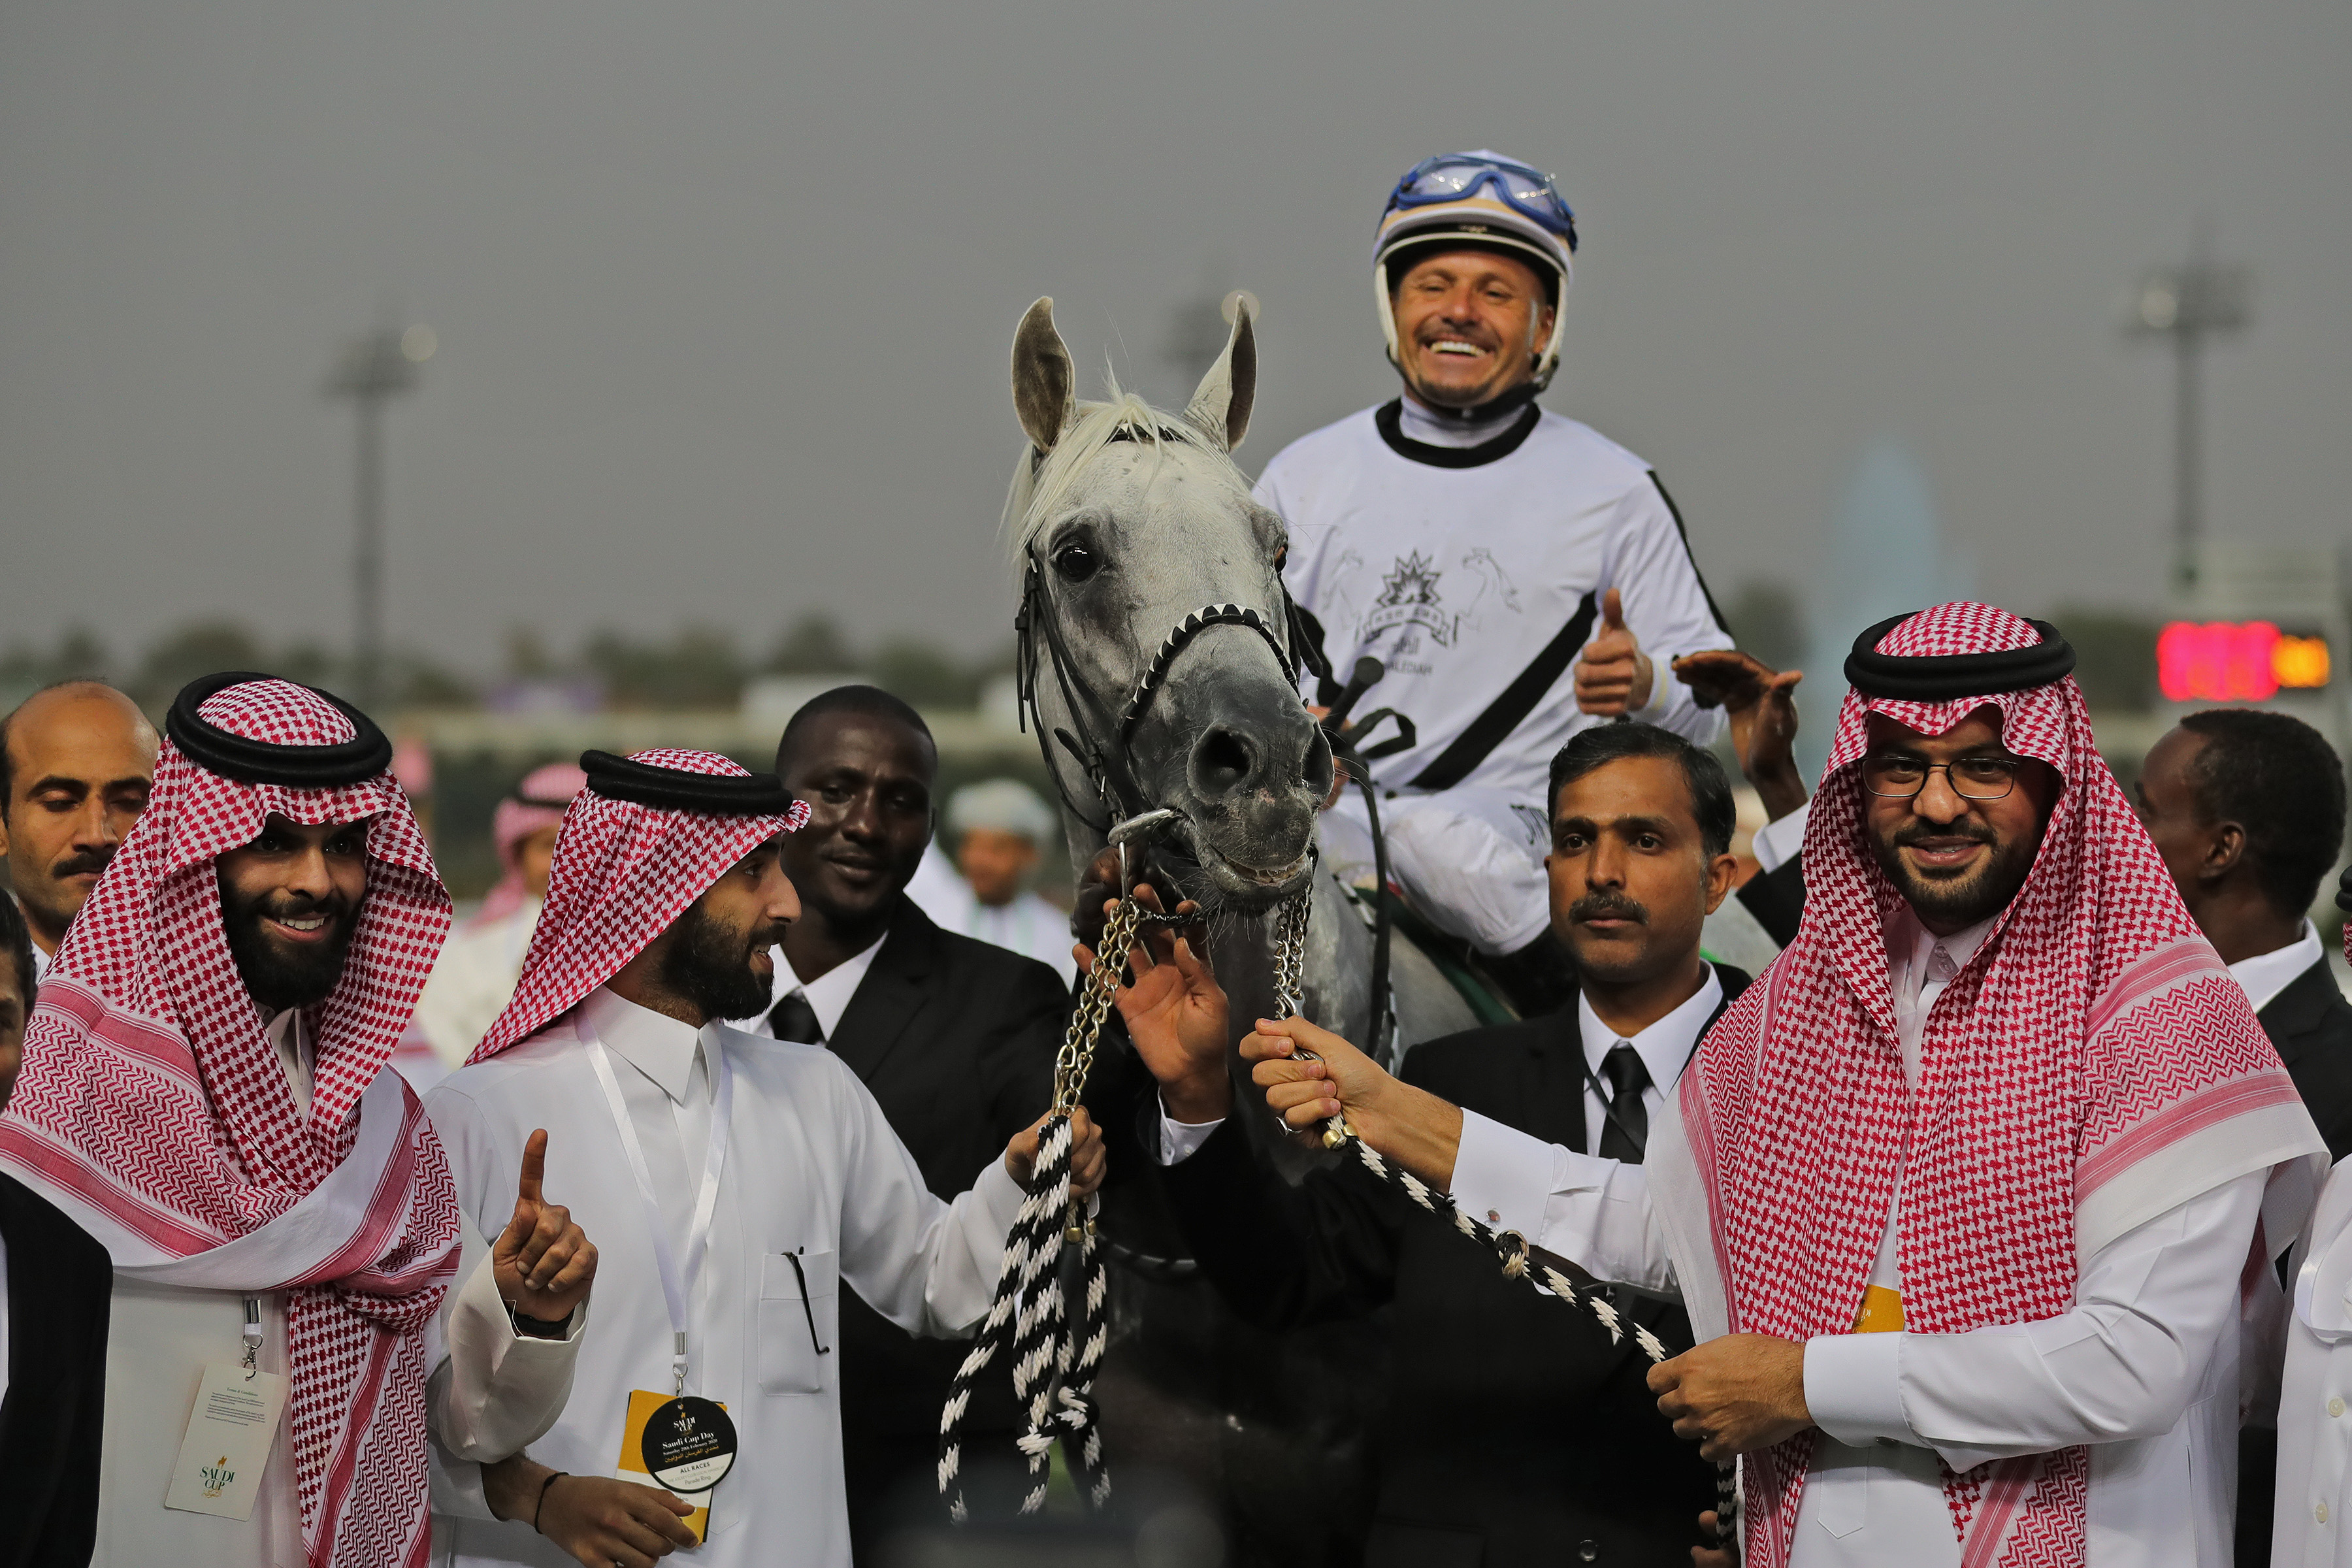 THE OBAIYA CLASSIC - TALLAAB AL KHALEDIAH SHOWS HIS PROWESS ON HOME SOIL